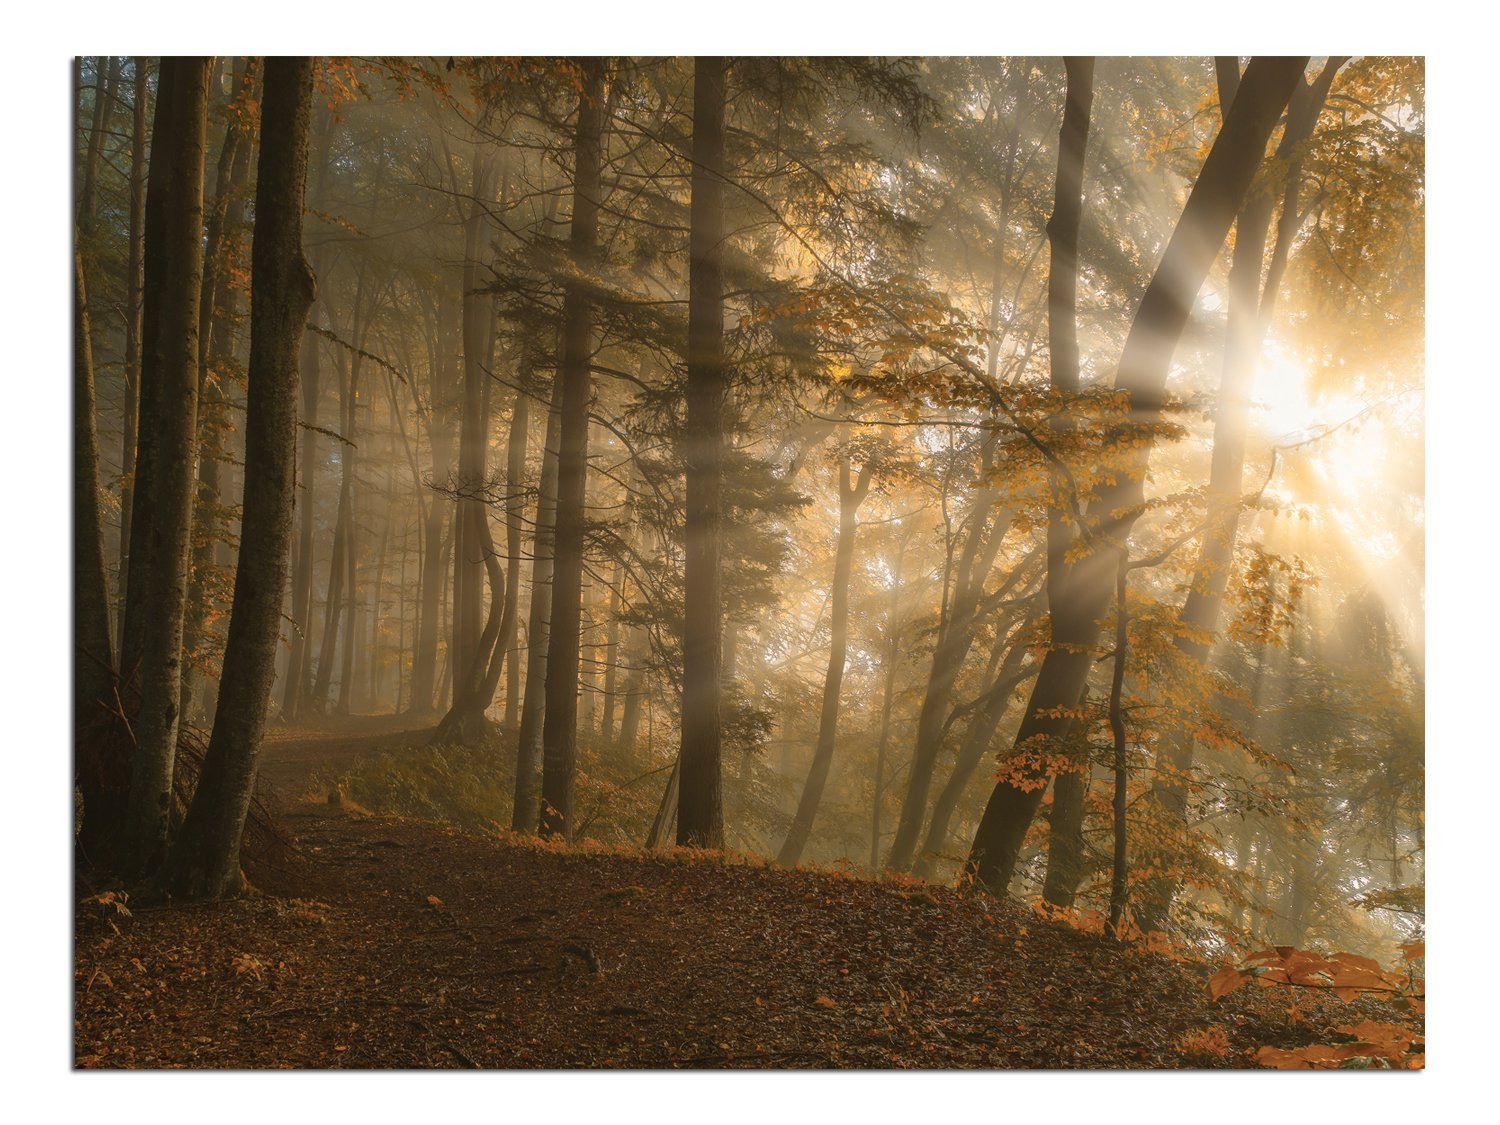 JP London Solvent Free Print PAPXS1X751183 Forest Light Morning Mist Autumn Leaves Ready to Frame Poster Wall Art 8 by 10